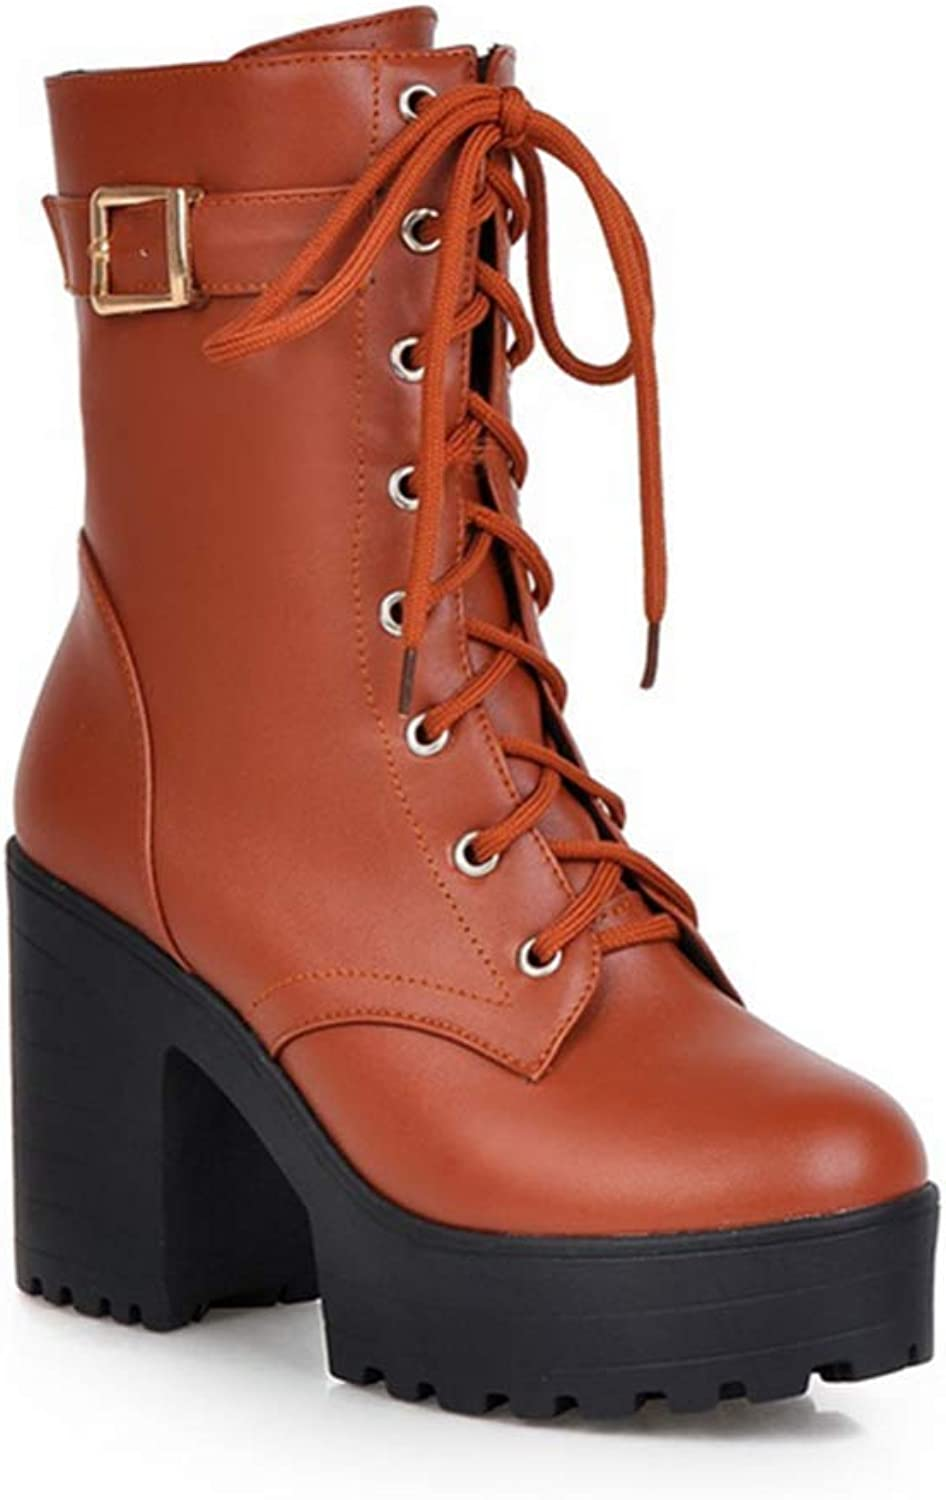 Shiney Women's Martin Boots Front Strap Chunky Heel Buckle Female Boots Fall Winter